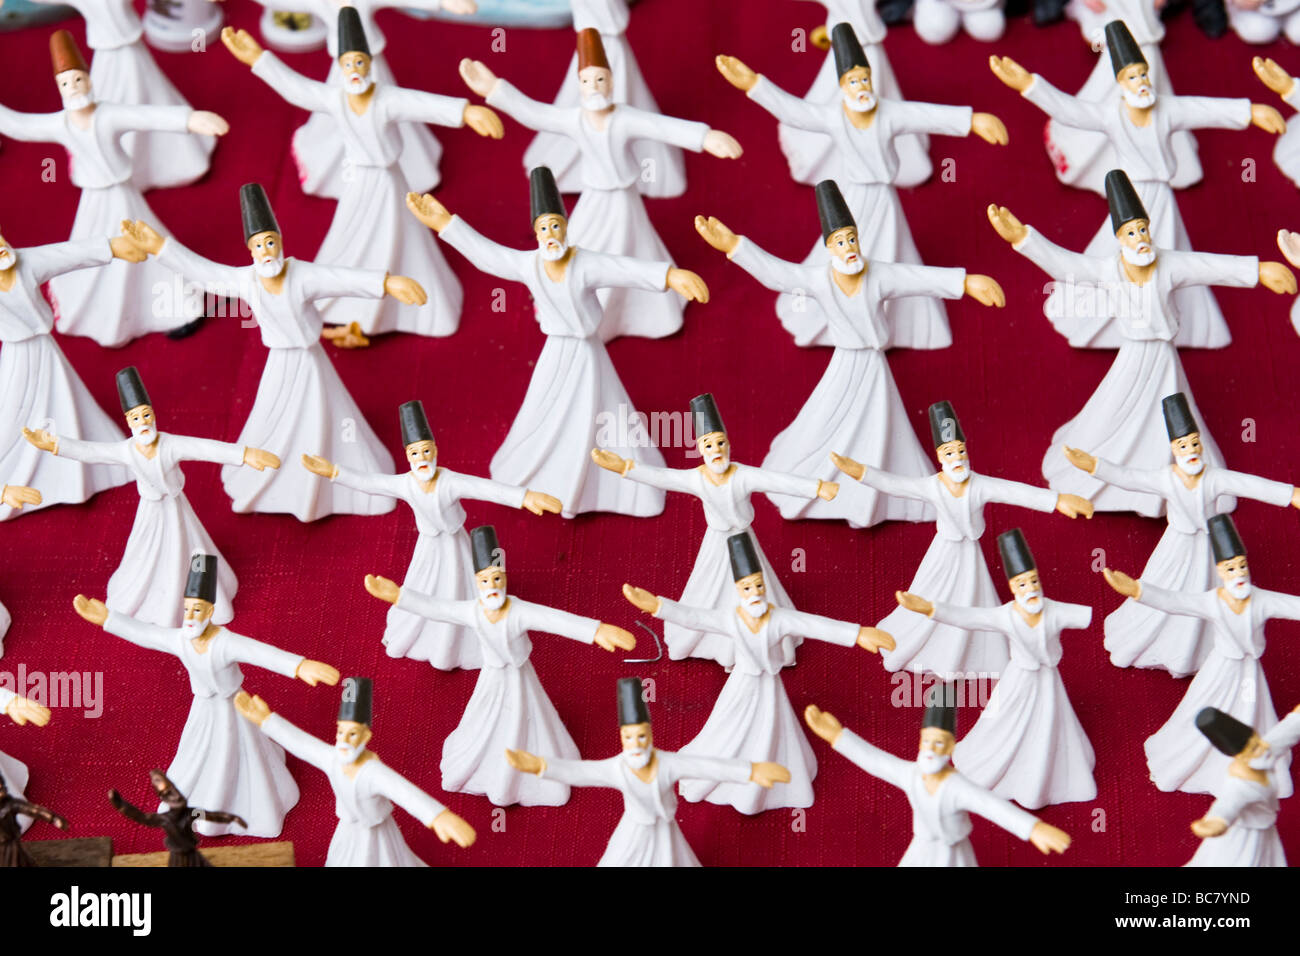 Turkey , Istanbul , market stall of model Mevlevi Order or Whirling Dervishes which relates to the Sema Ritual Selams - Stock Image